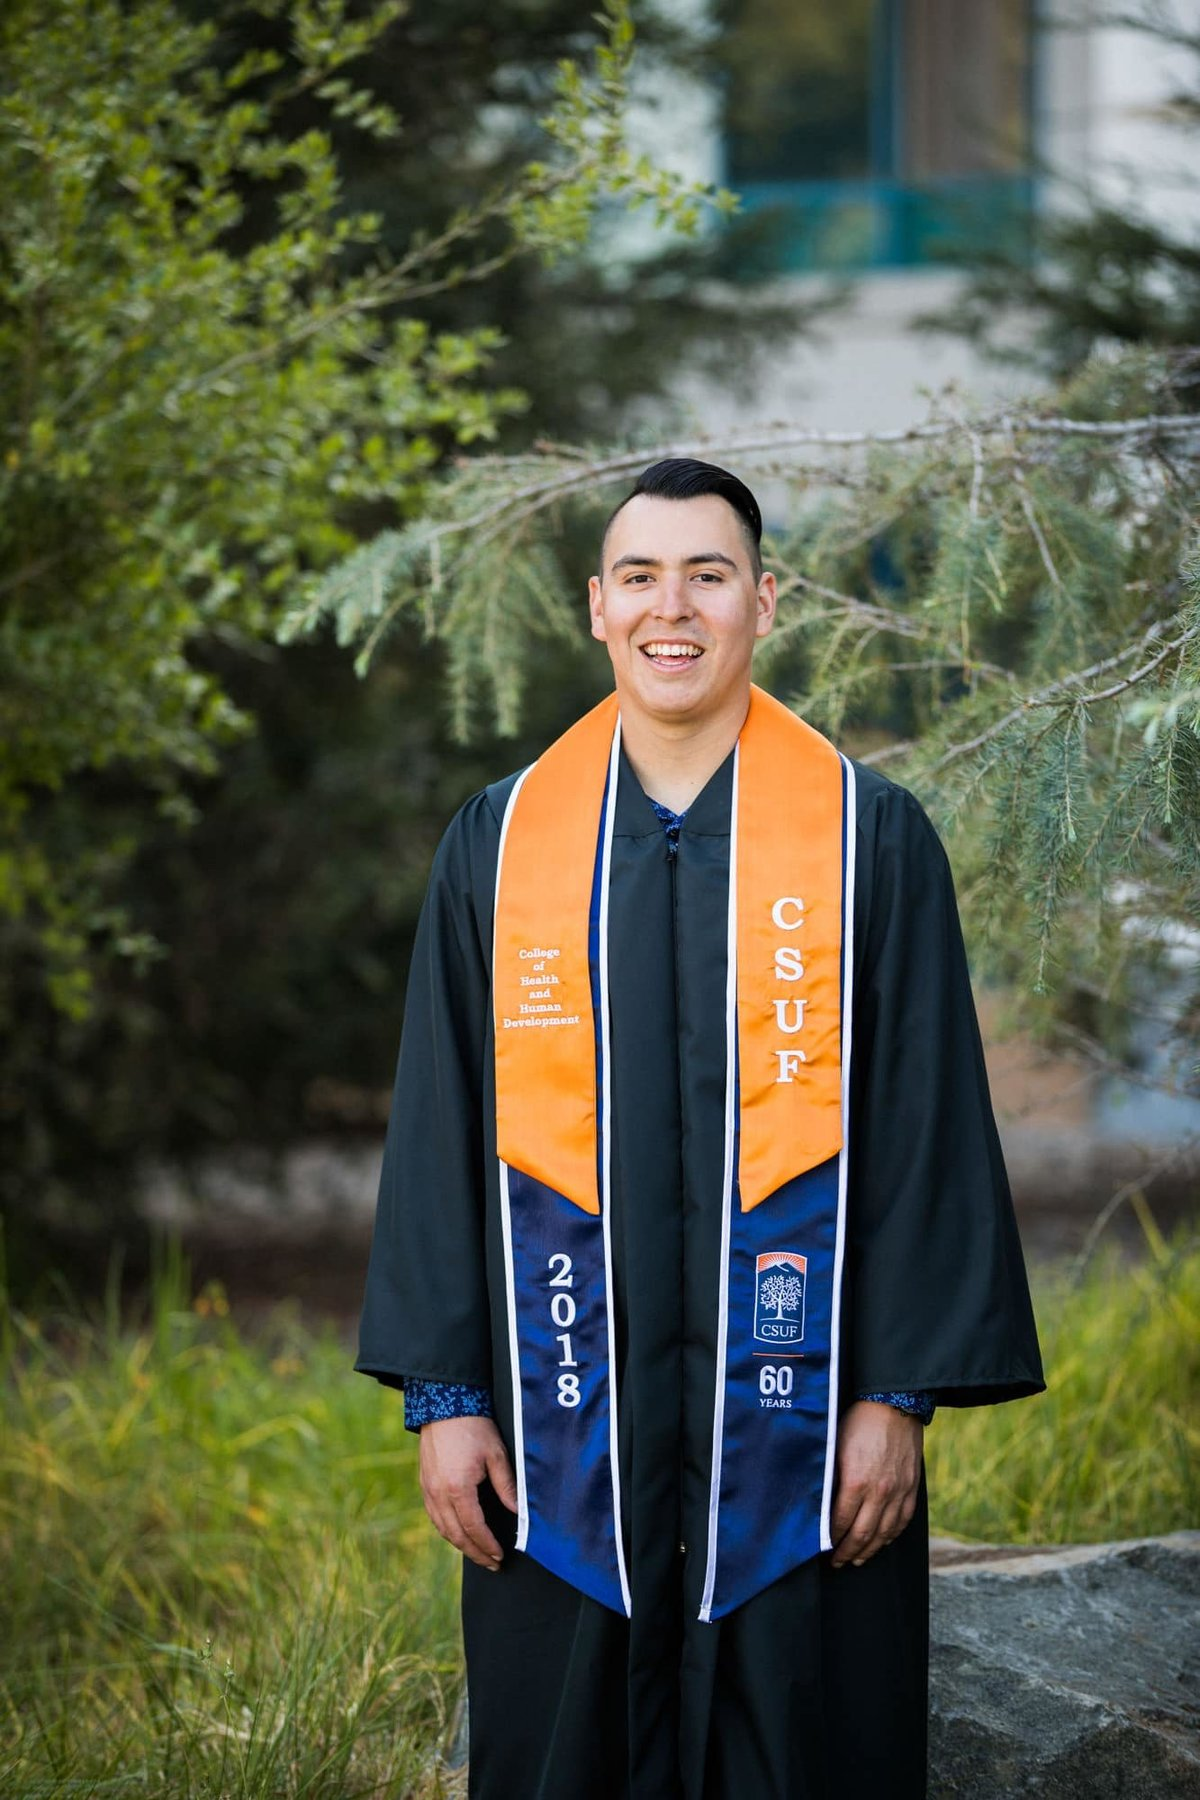 CSUF Senior Photos_